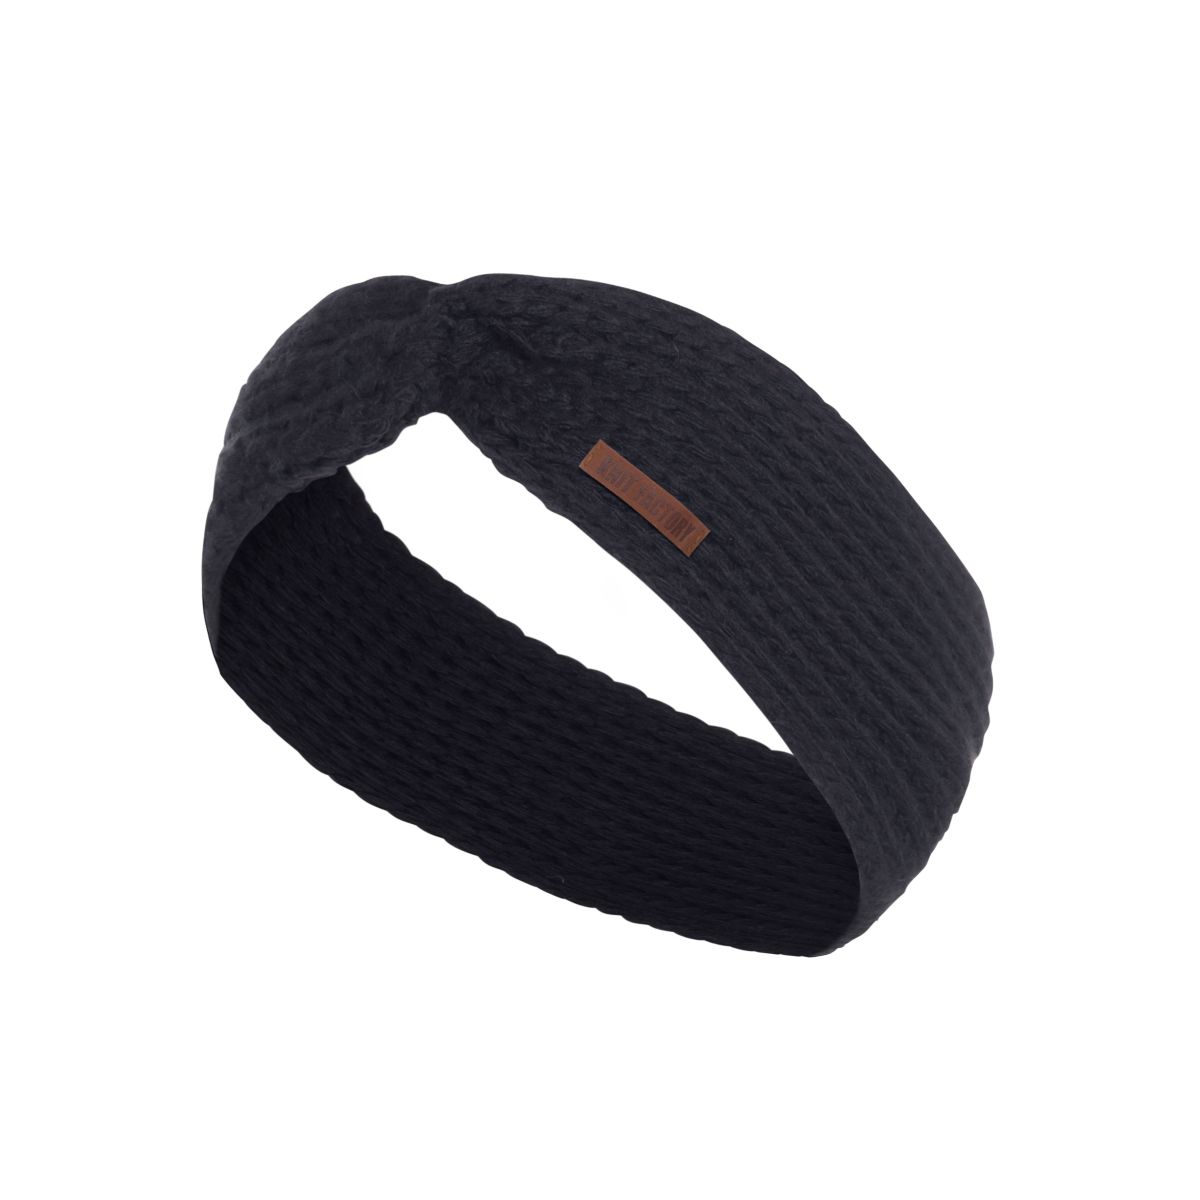 joy headband navy